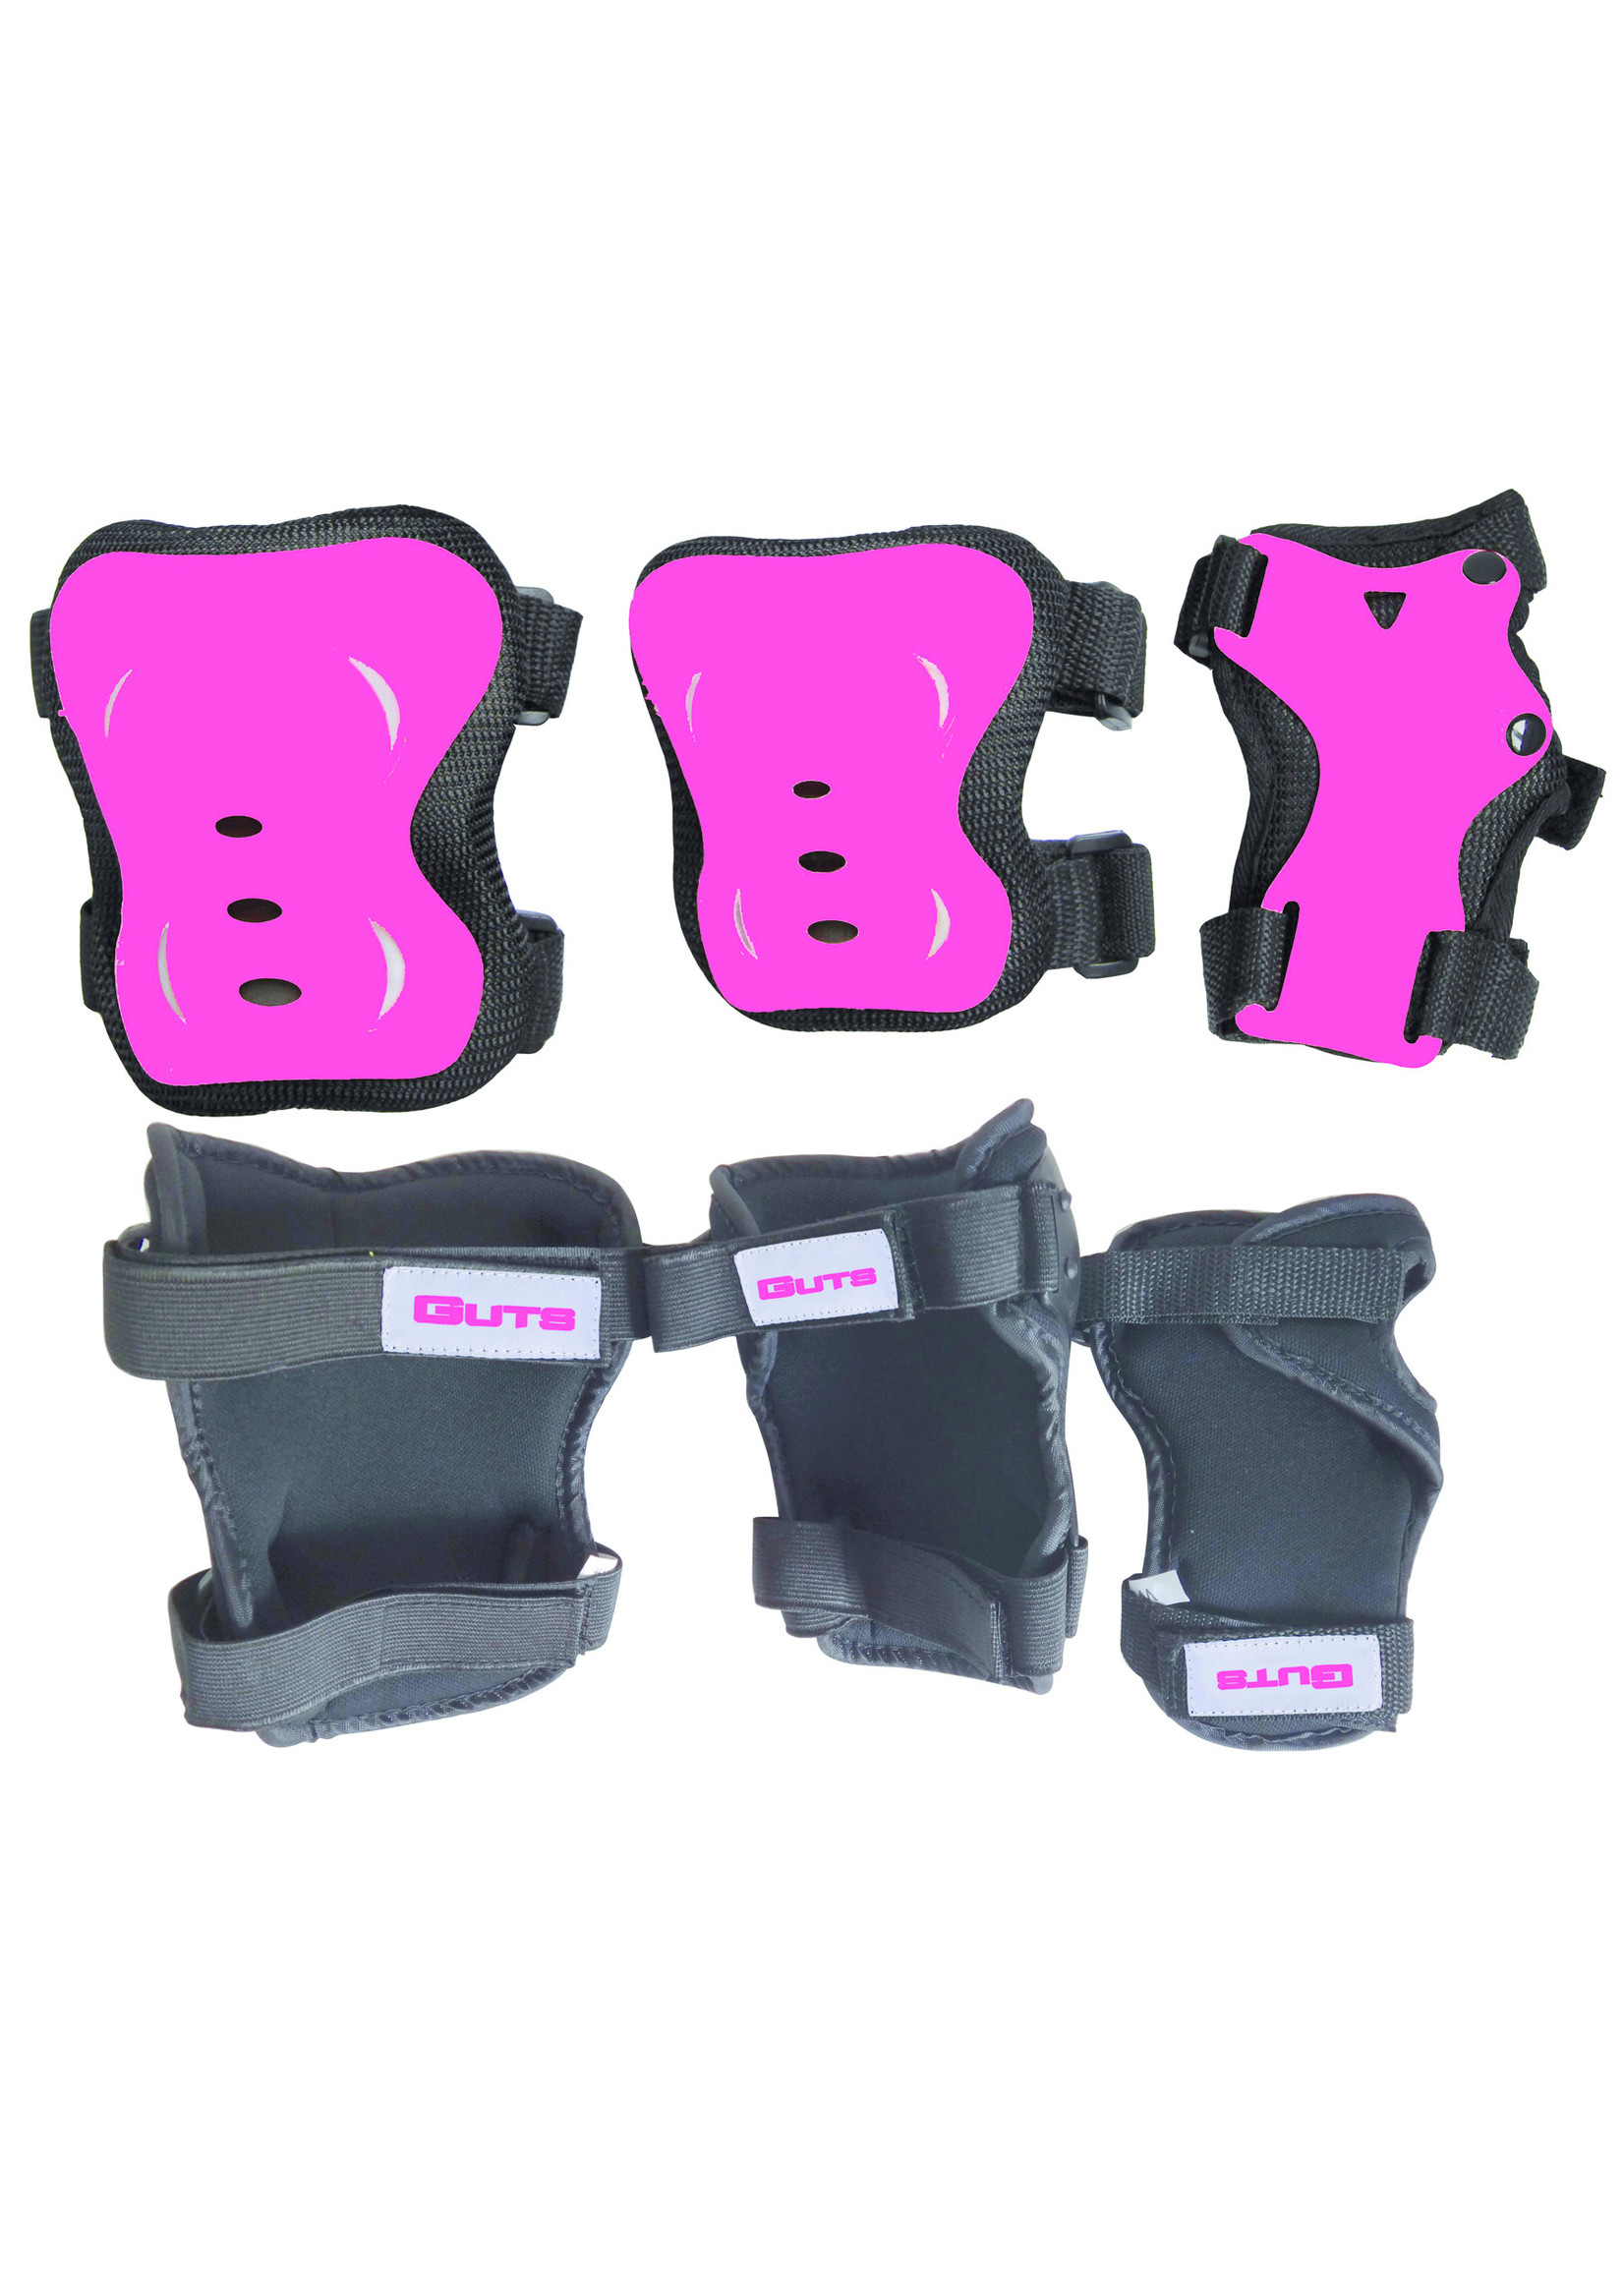 GUTS YOUTH PROTECTION KIT